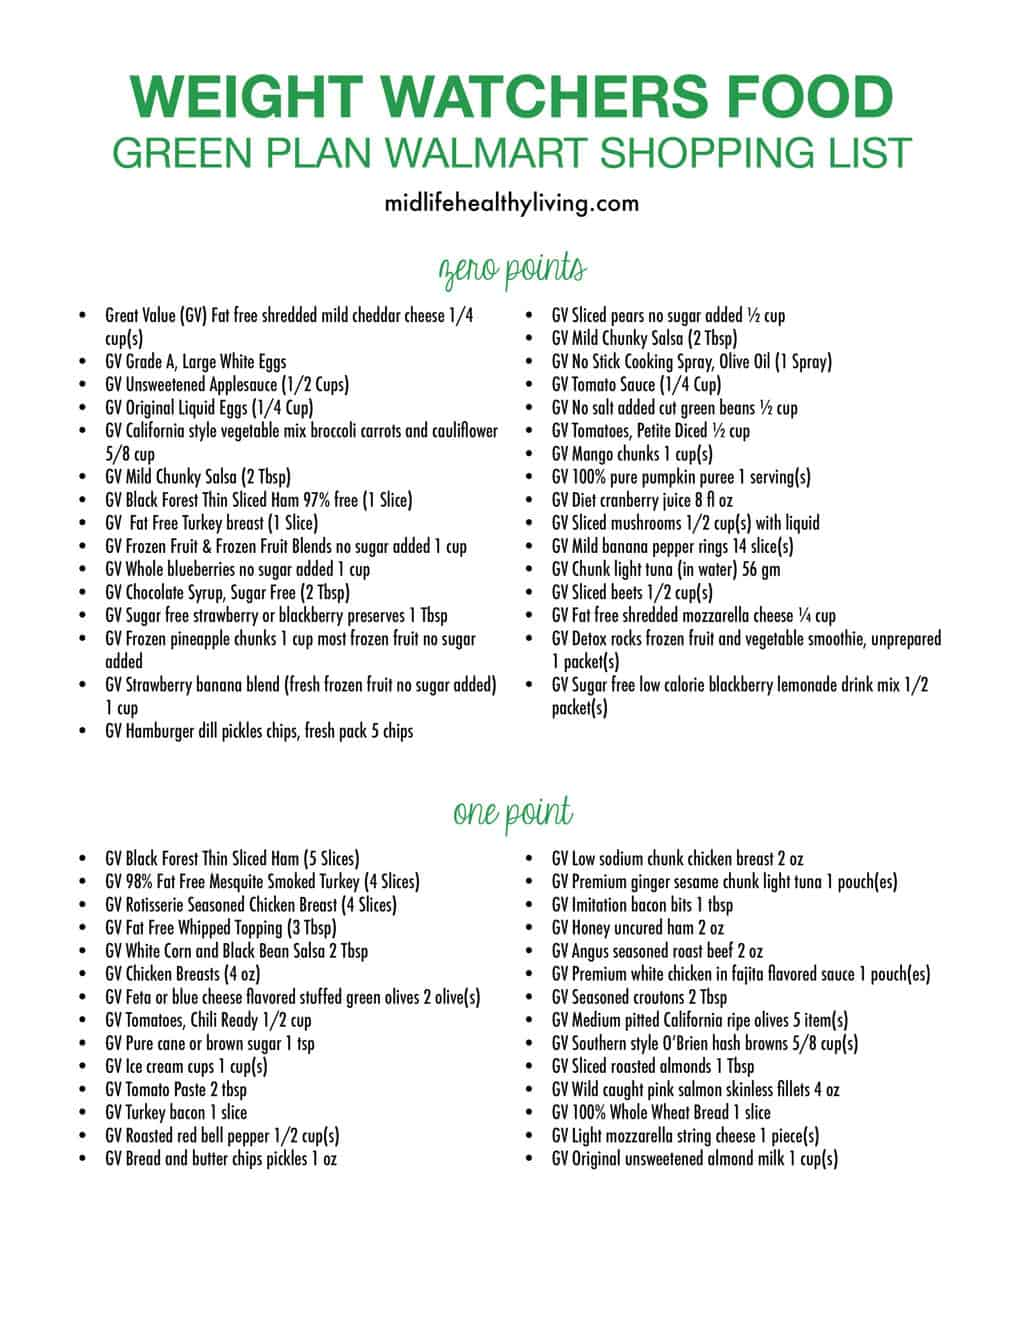 Printable page showing the foods to buy from Walmart for green plan